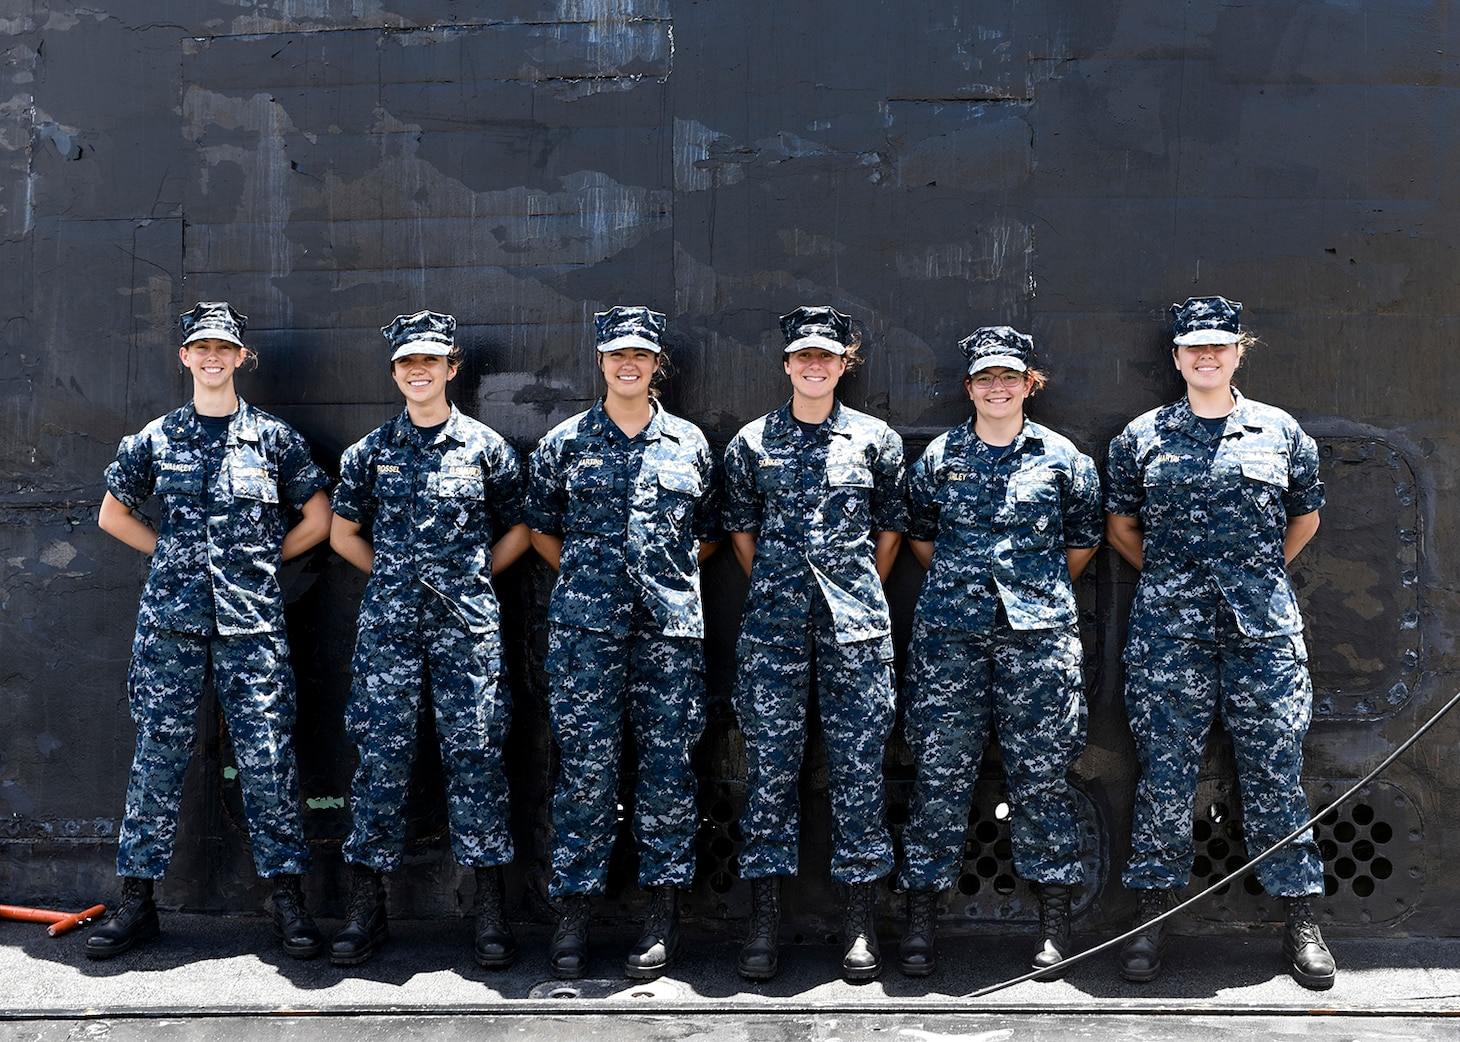 170721-N-LY160-0018 PEARL HARBOR (July 21, 2017) -  Group of midshipmen stand aboard the Virginia-class fast attack submarine USS Texas (SSN 775) for a photo shoot. The midshipmen are participating in their summer cruise training development program. (U.S. Navy photo by Mass Communication Specialist 2nd Class Michael H. Lee)